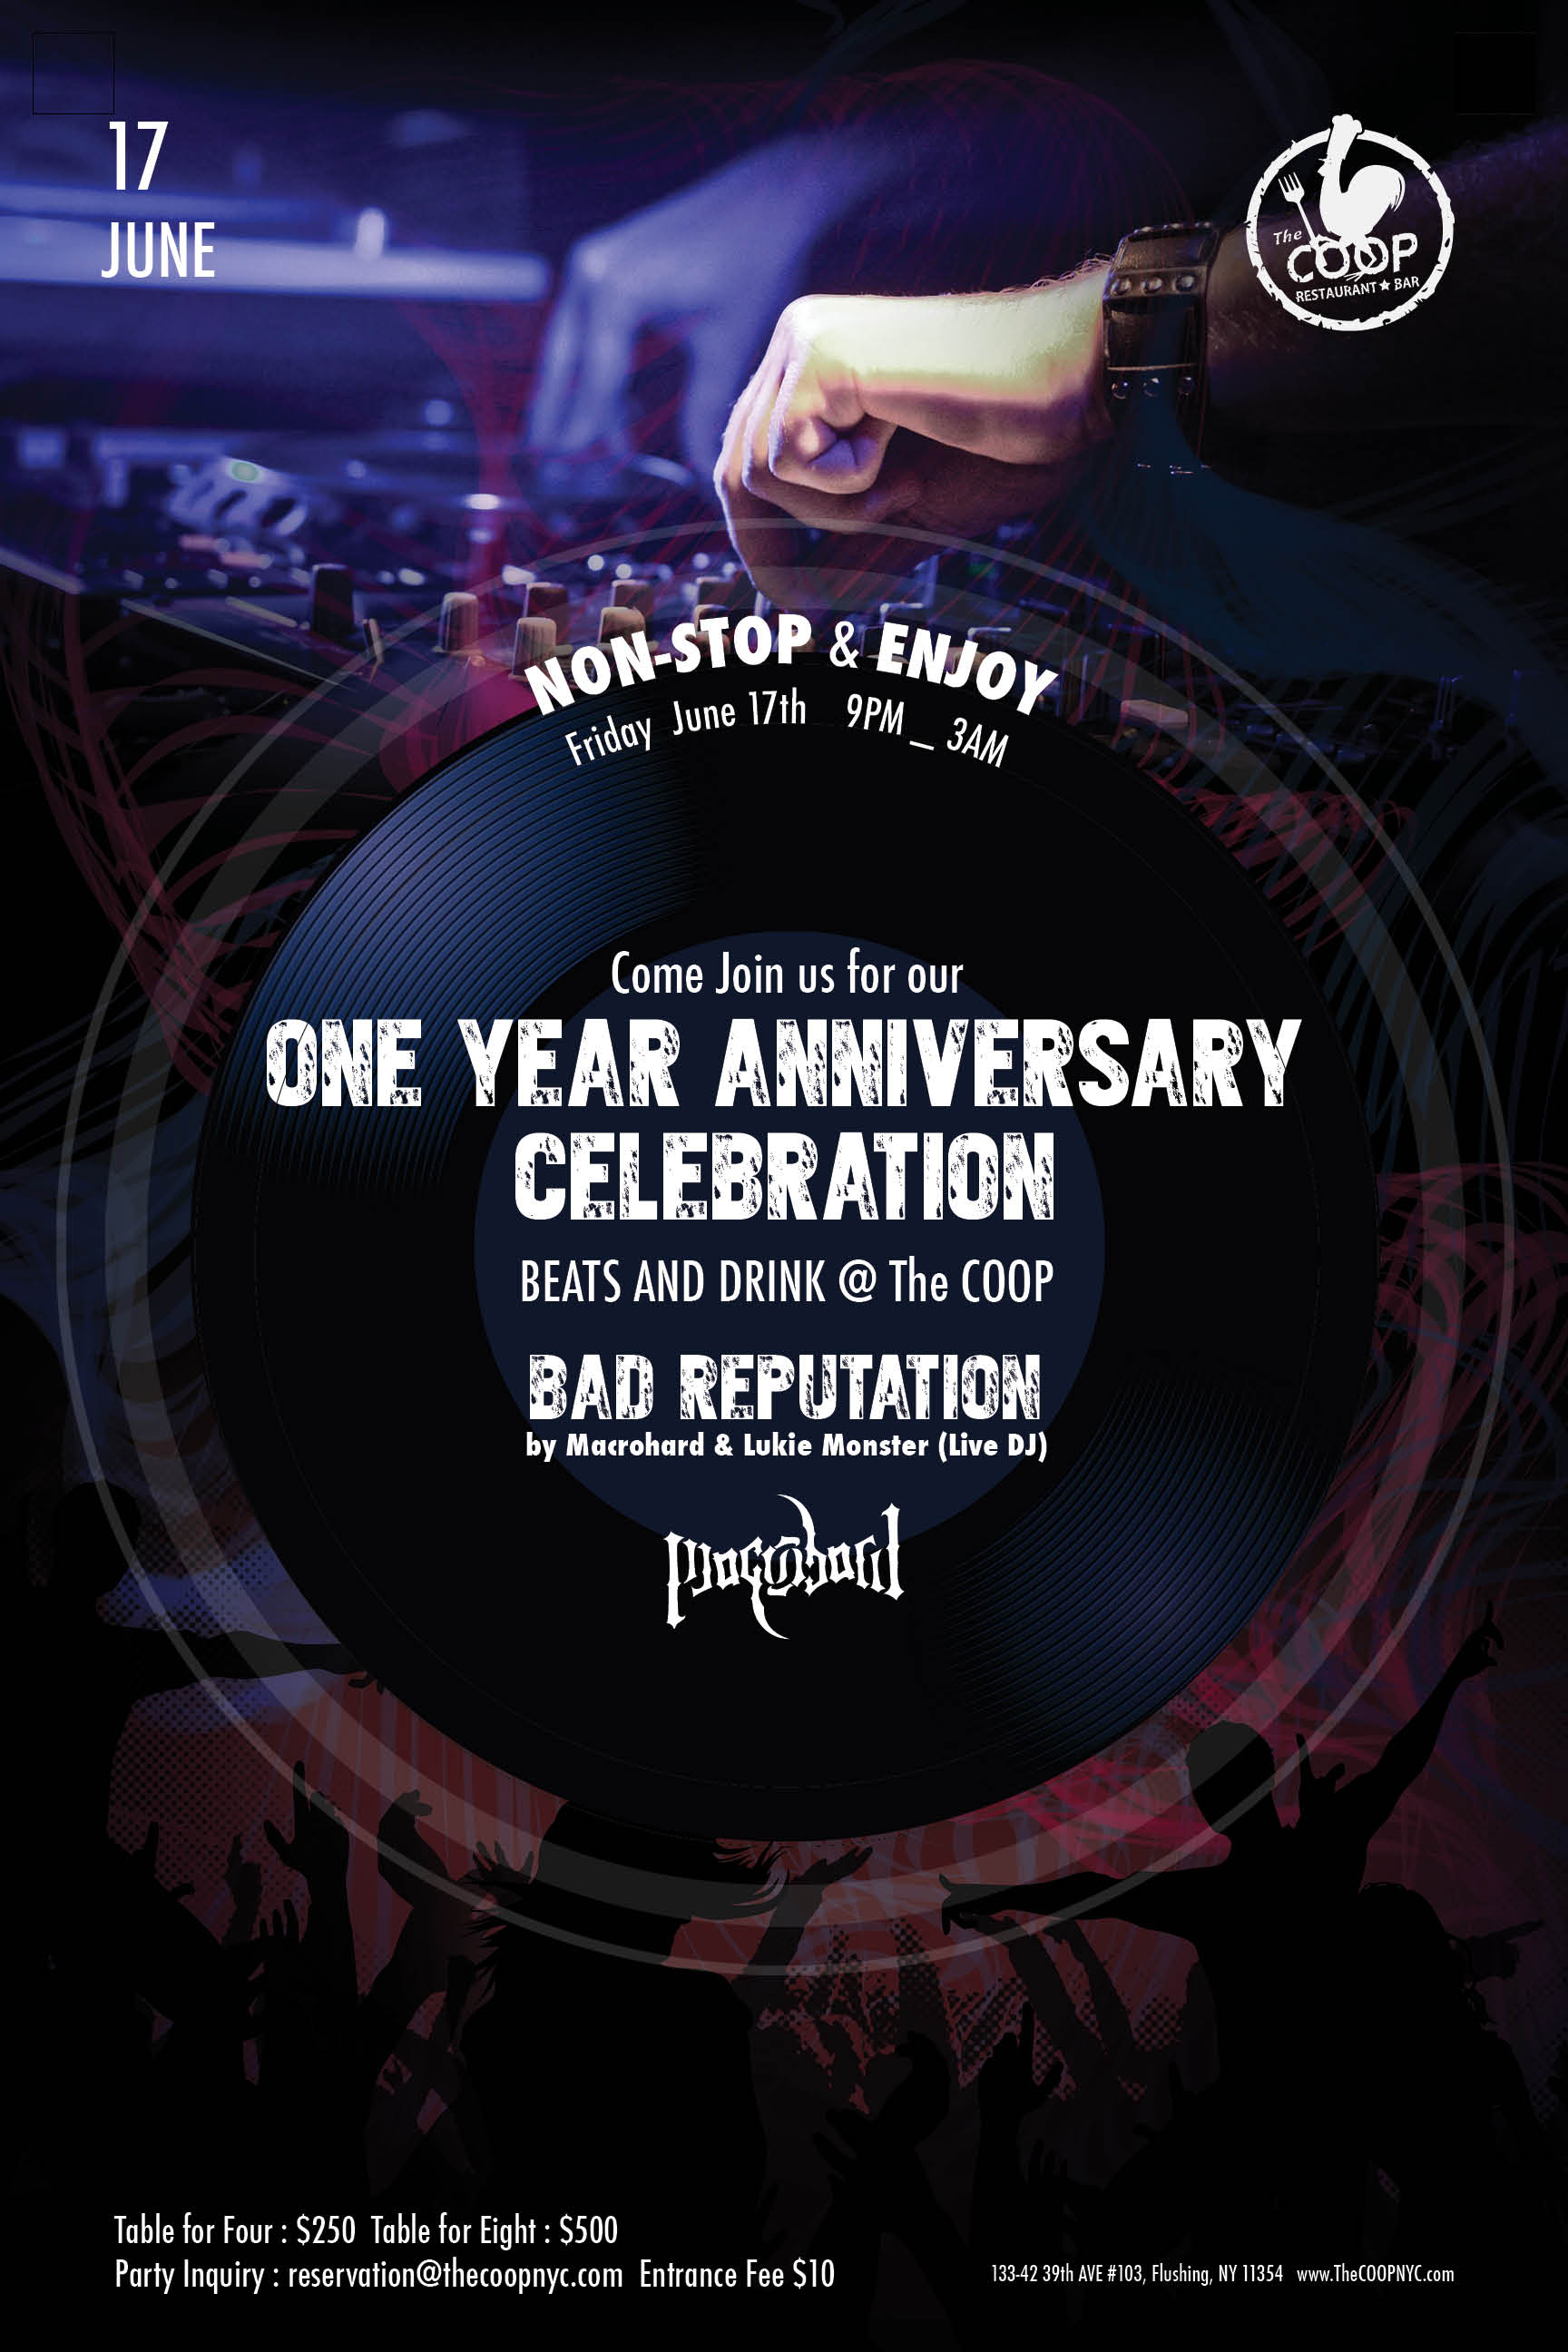 One Year Anniversary Celebration Live Dj Party The Coop